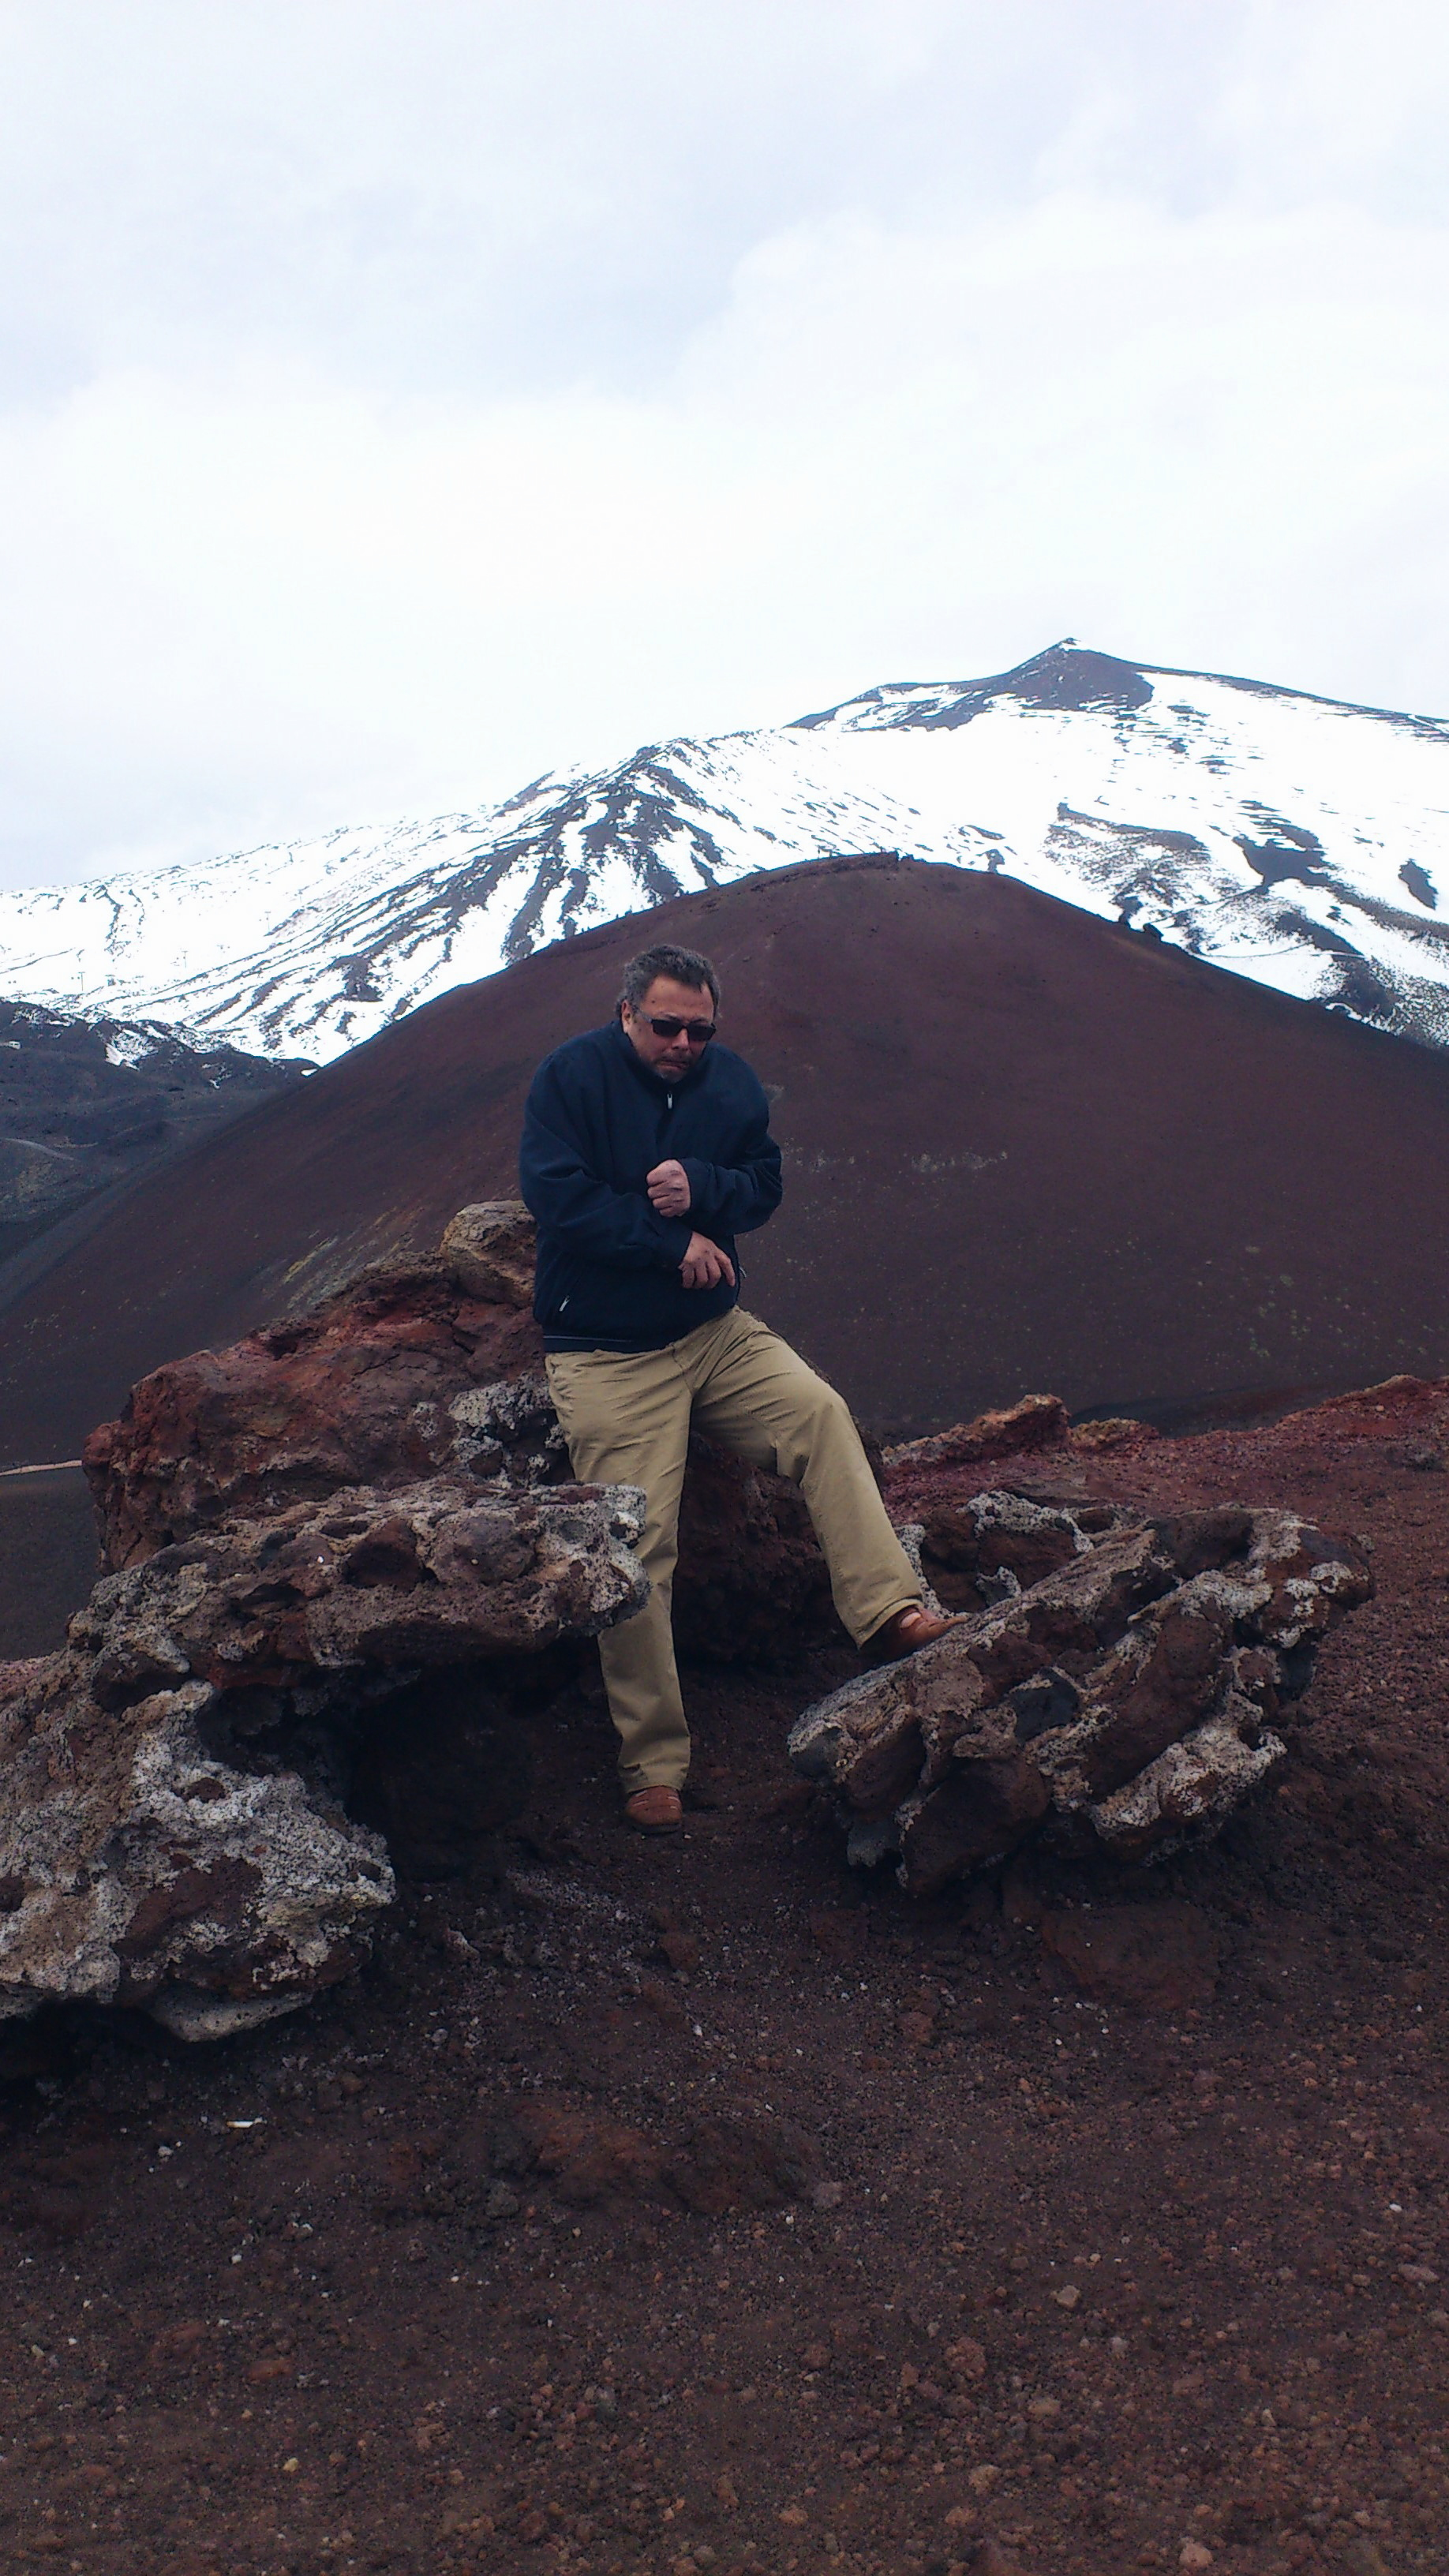 freeing cold on top of Etna vulcano Sicily